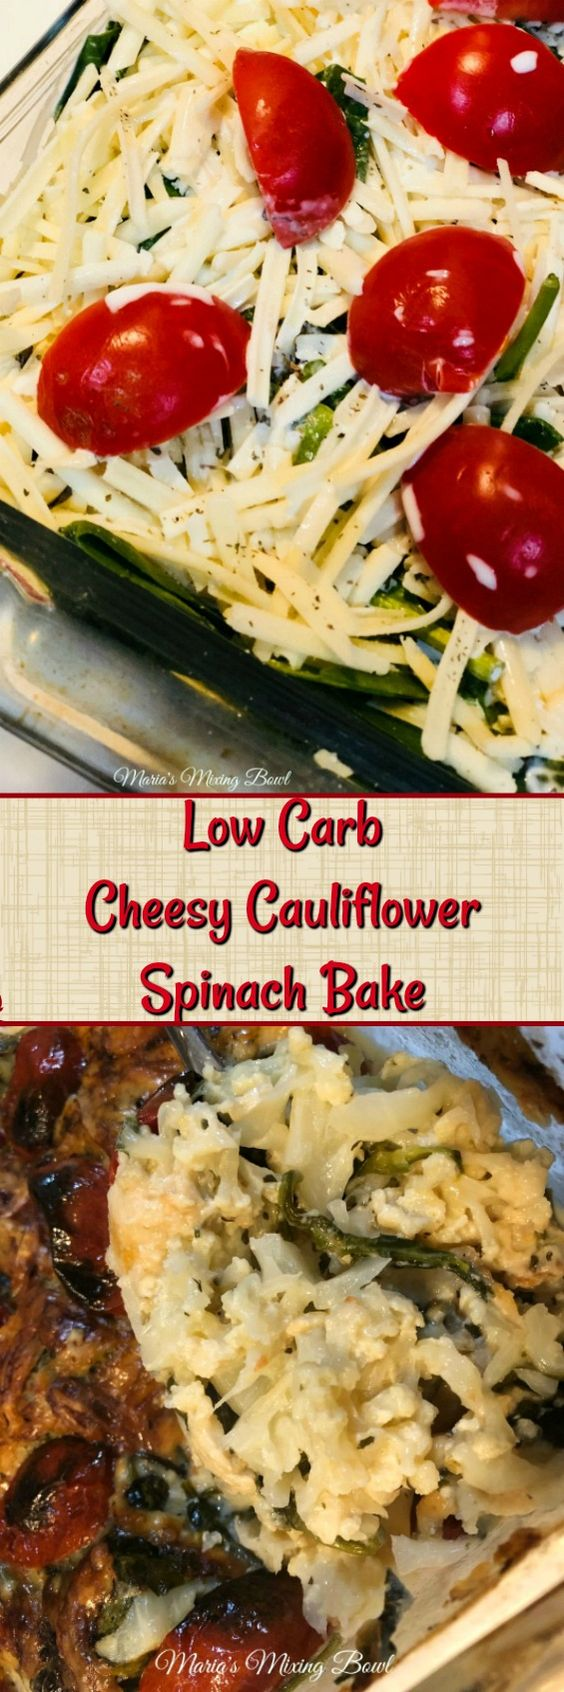 Low Carb Cheesy Cauliflower Spinach Bake   a delicious low-carb side this that is one of our favorite side dishes.  It is cheesy and creamy and full of flavor!